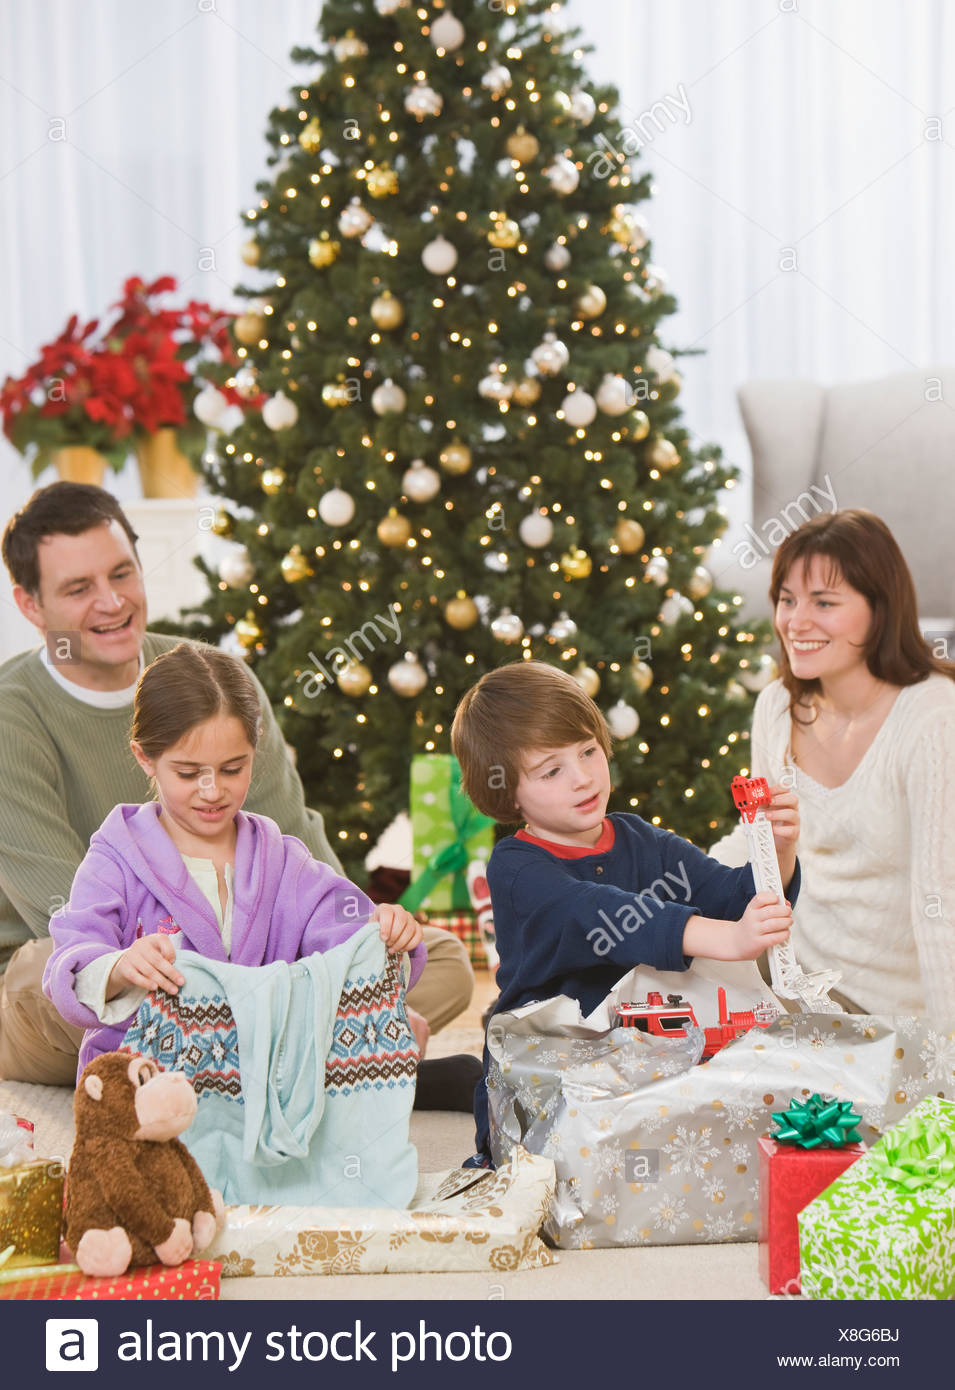 Siblings opening Christmas gifts  sc 1 st  Alamy & Siblings opening Christmas gifts Stock Photo: 280639398 - Alamy